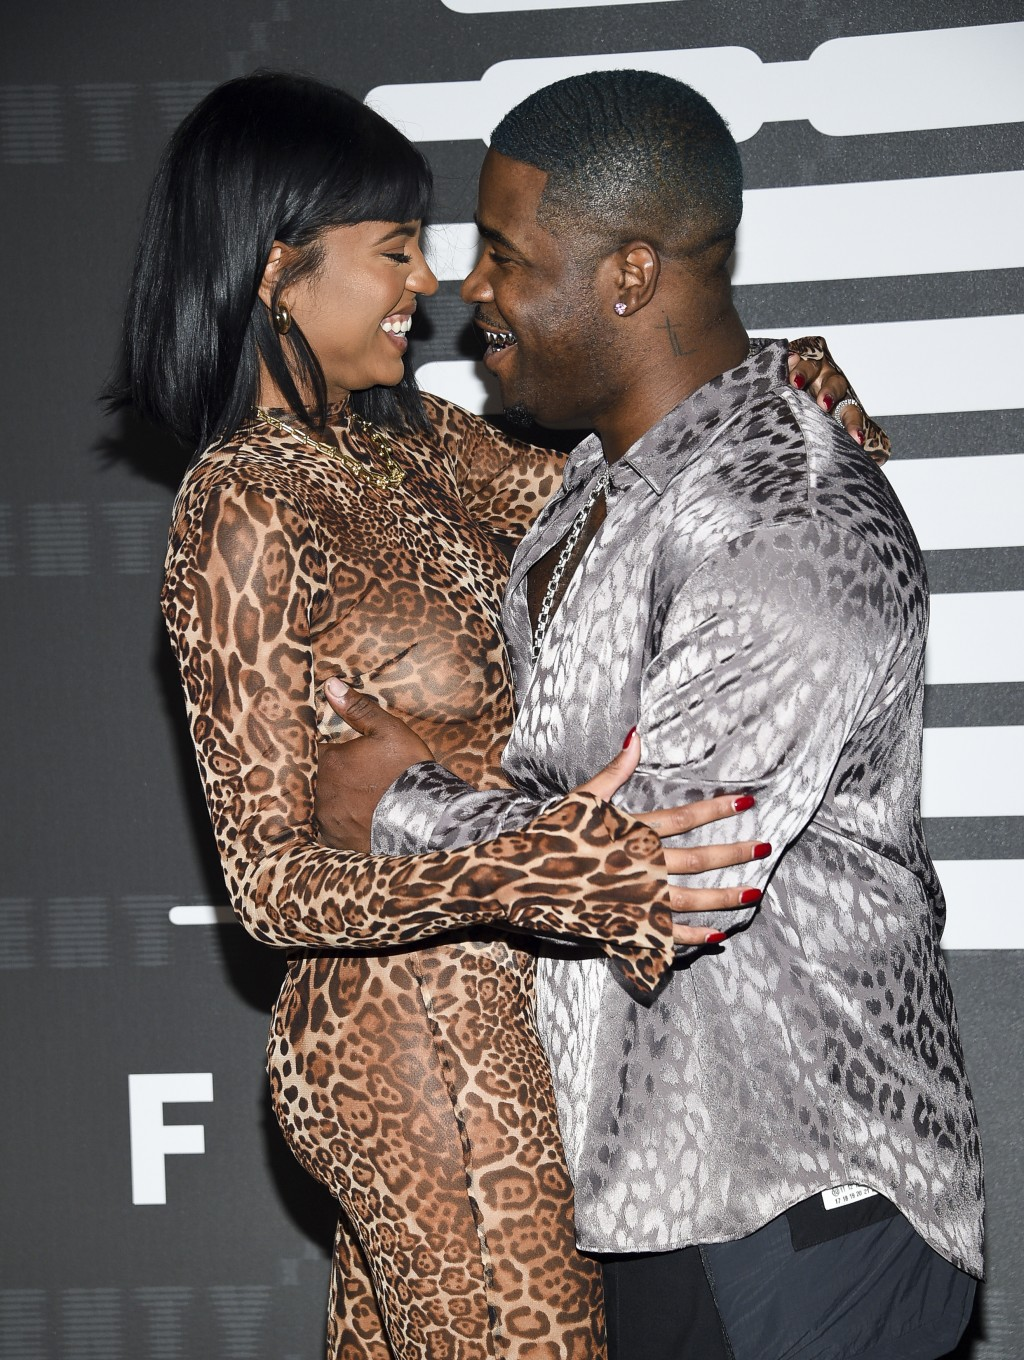 Rapper A$AP Ferg, right, and girlfriend Renell Medrano attend the Spring/Summer 2020 Savage X Fenty show, presented by Amazon Prime, at the Barclays C...